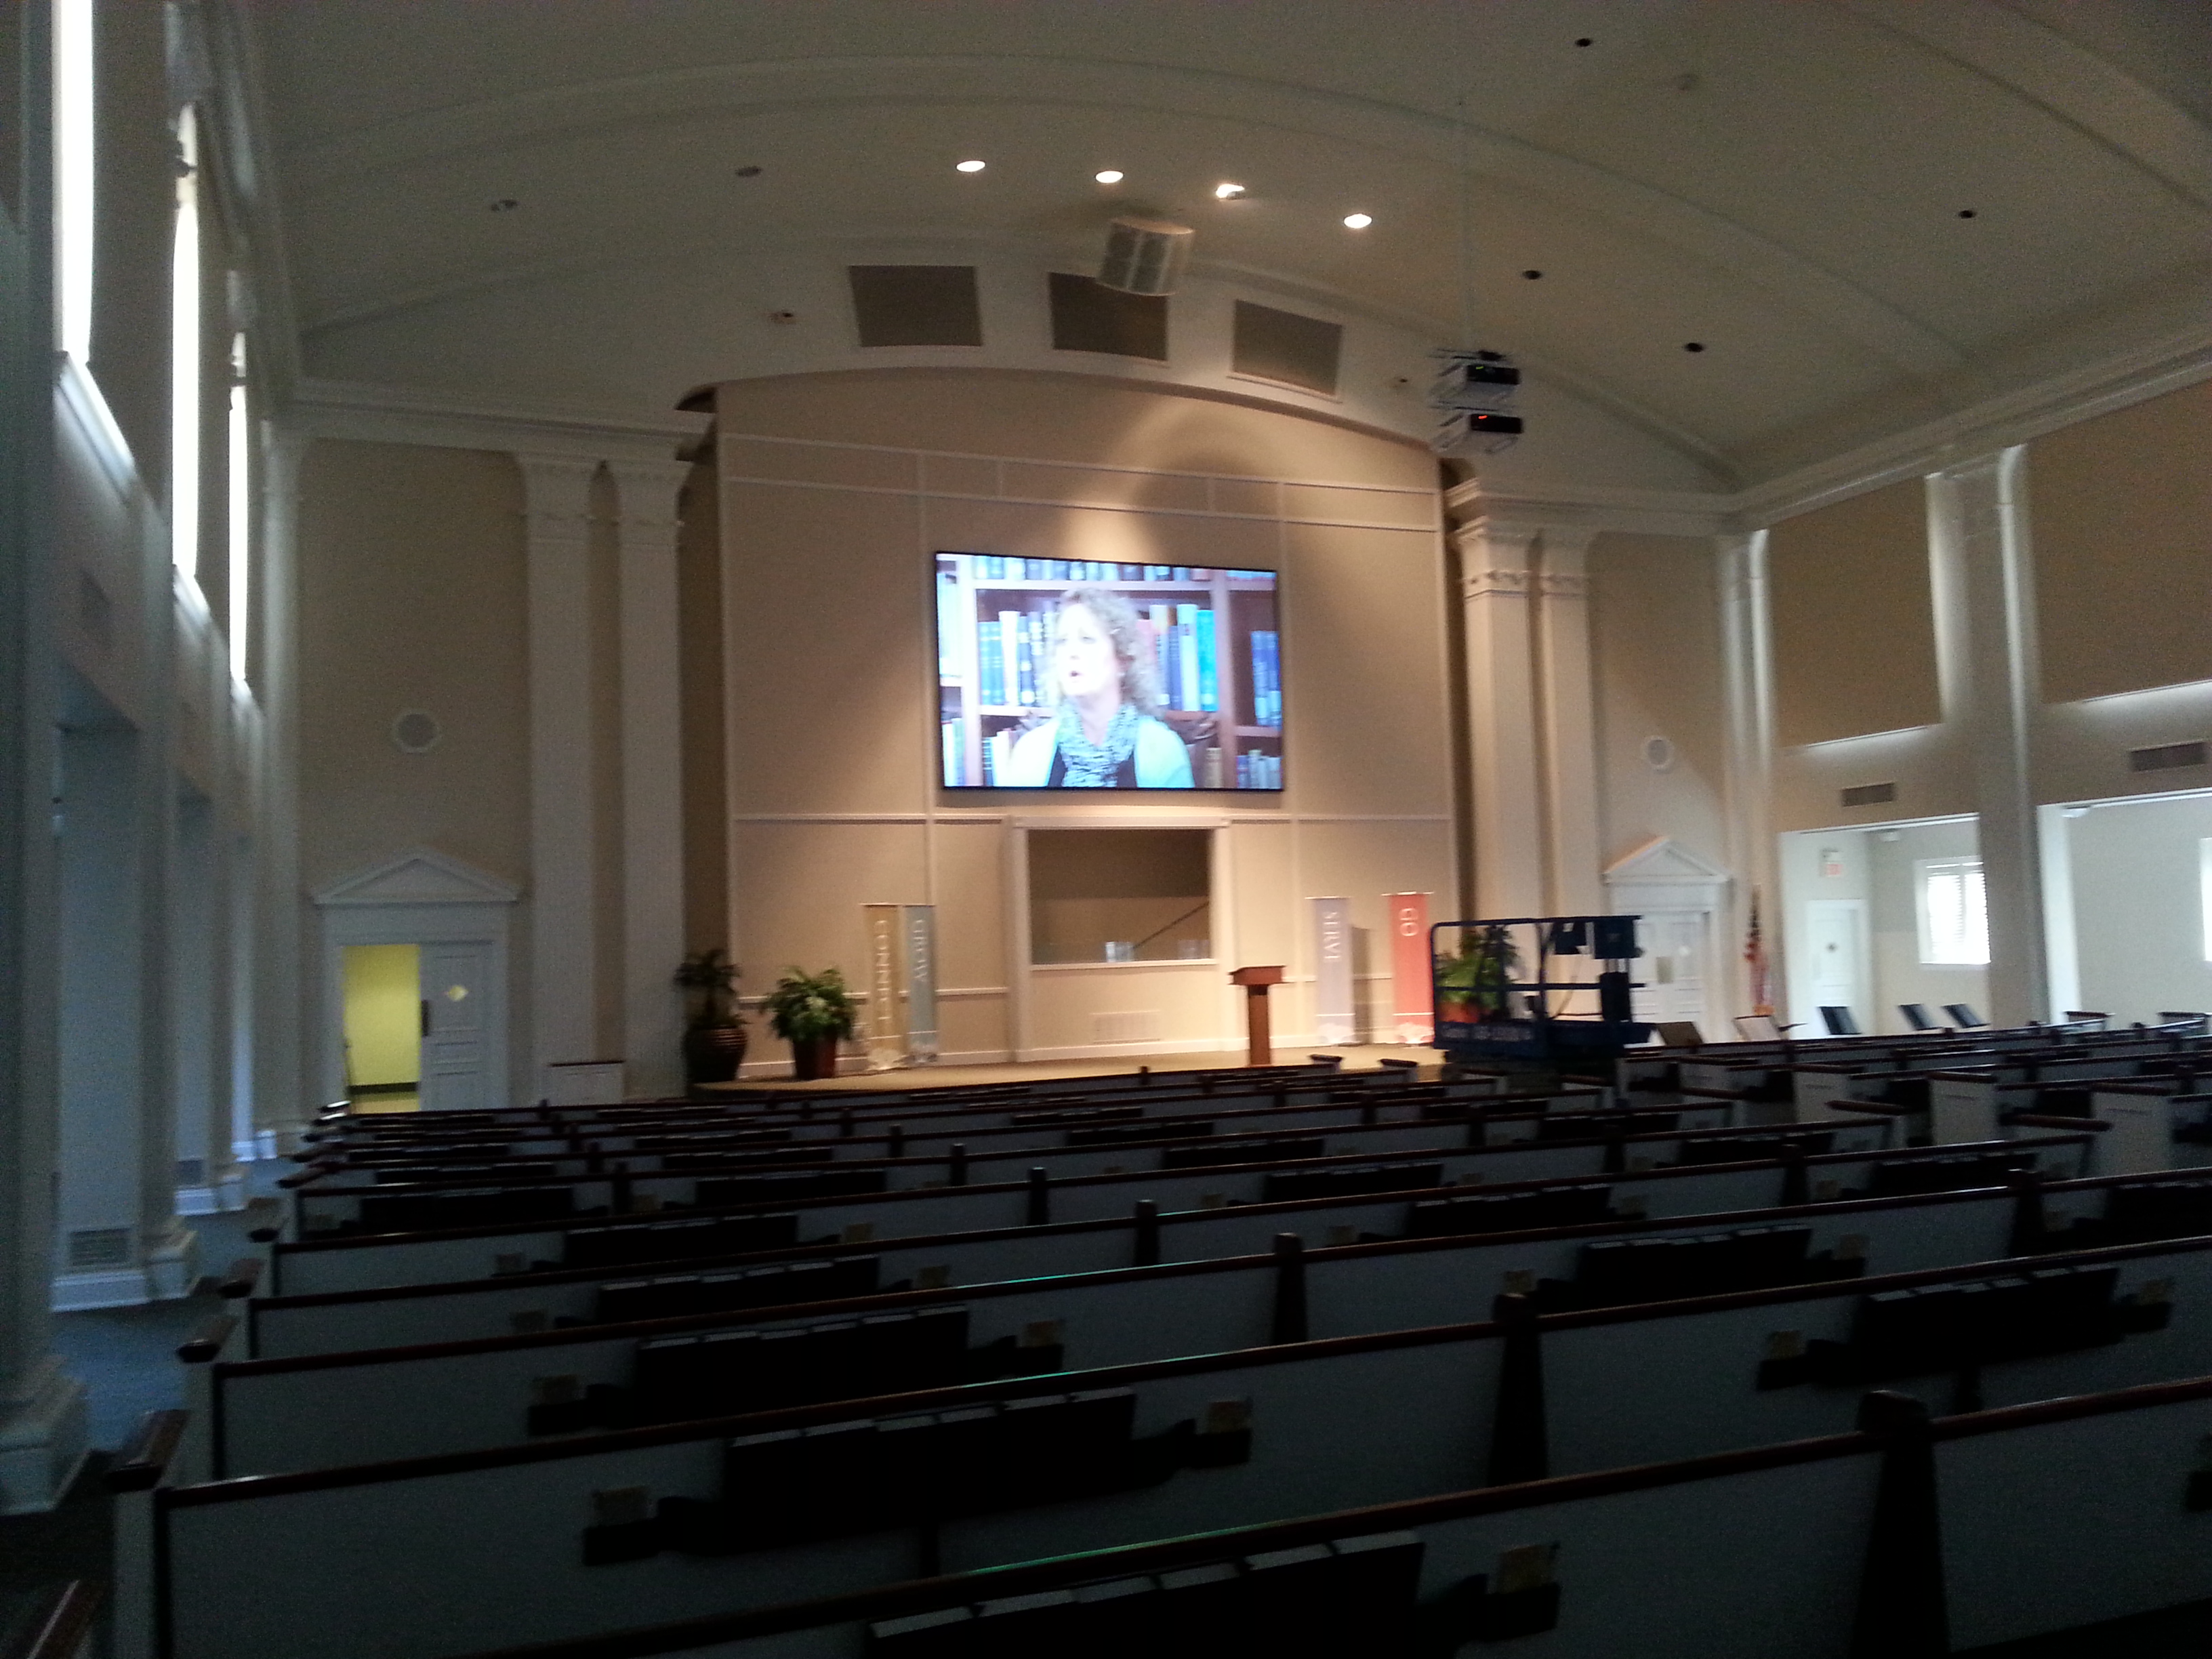 Church Audio Video Install Houston A V System Design Company Wiring Home Theater Projection Tv Custom Visual Designed For